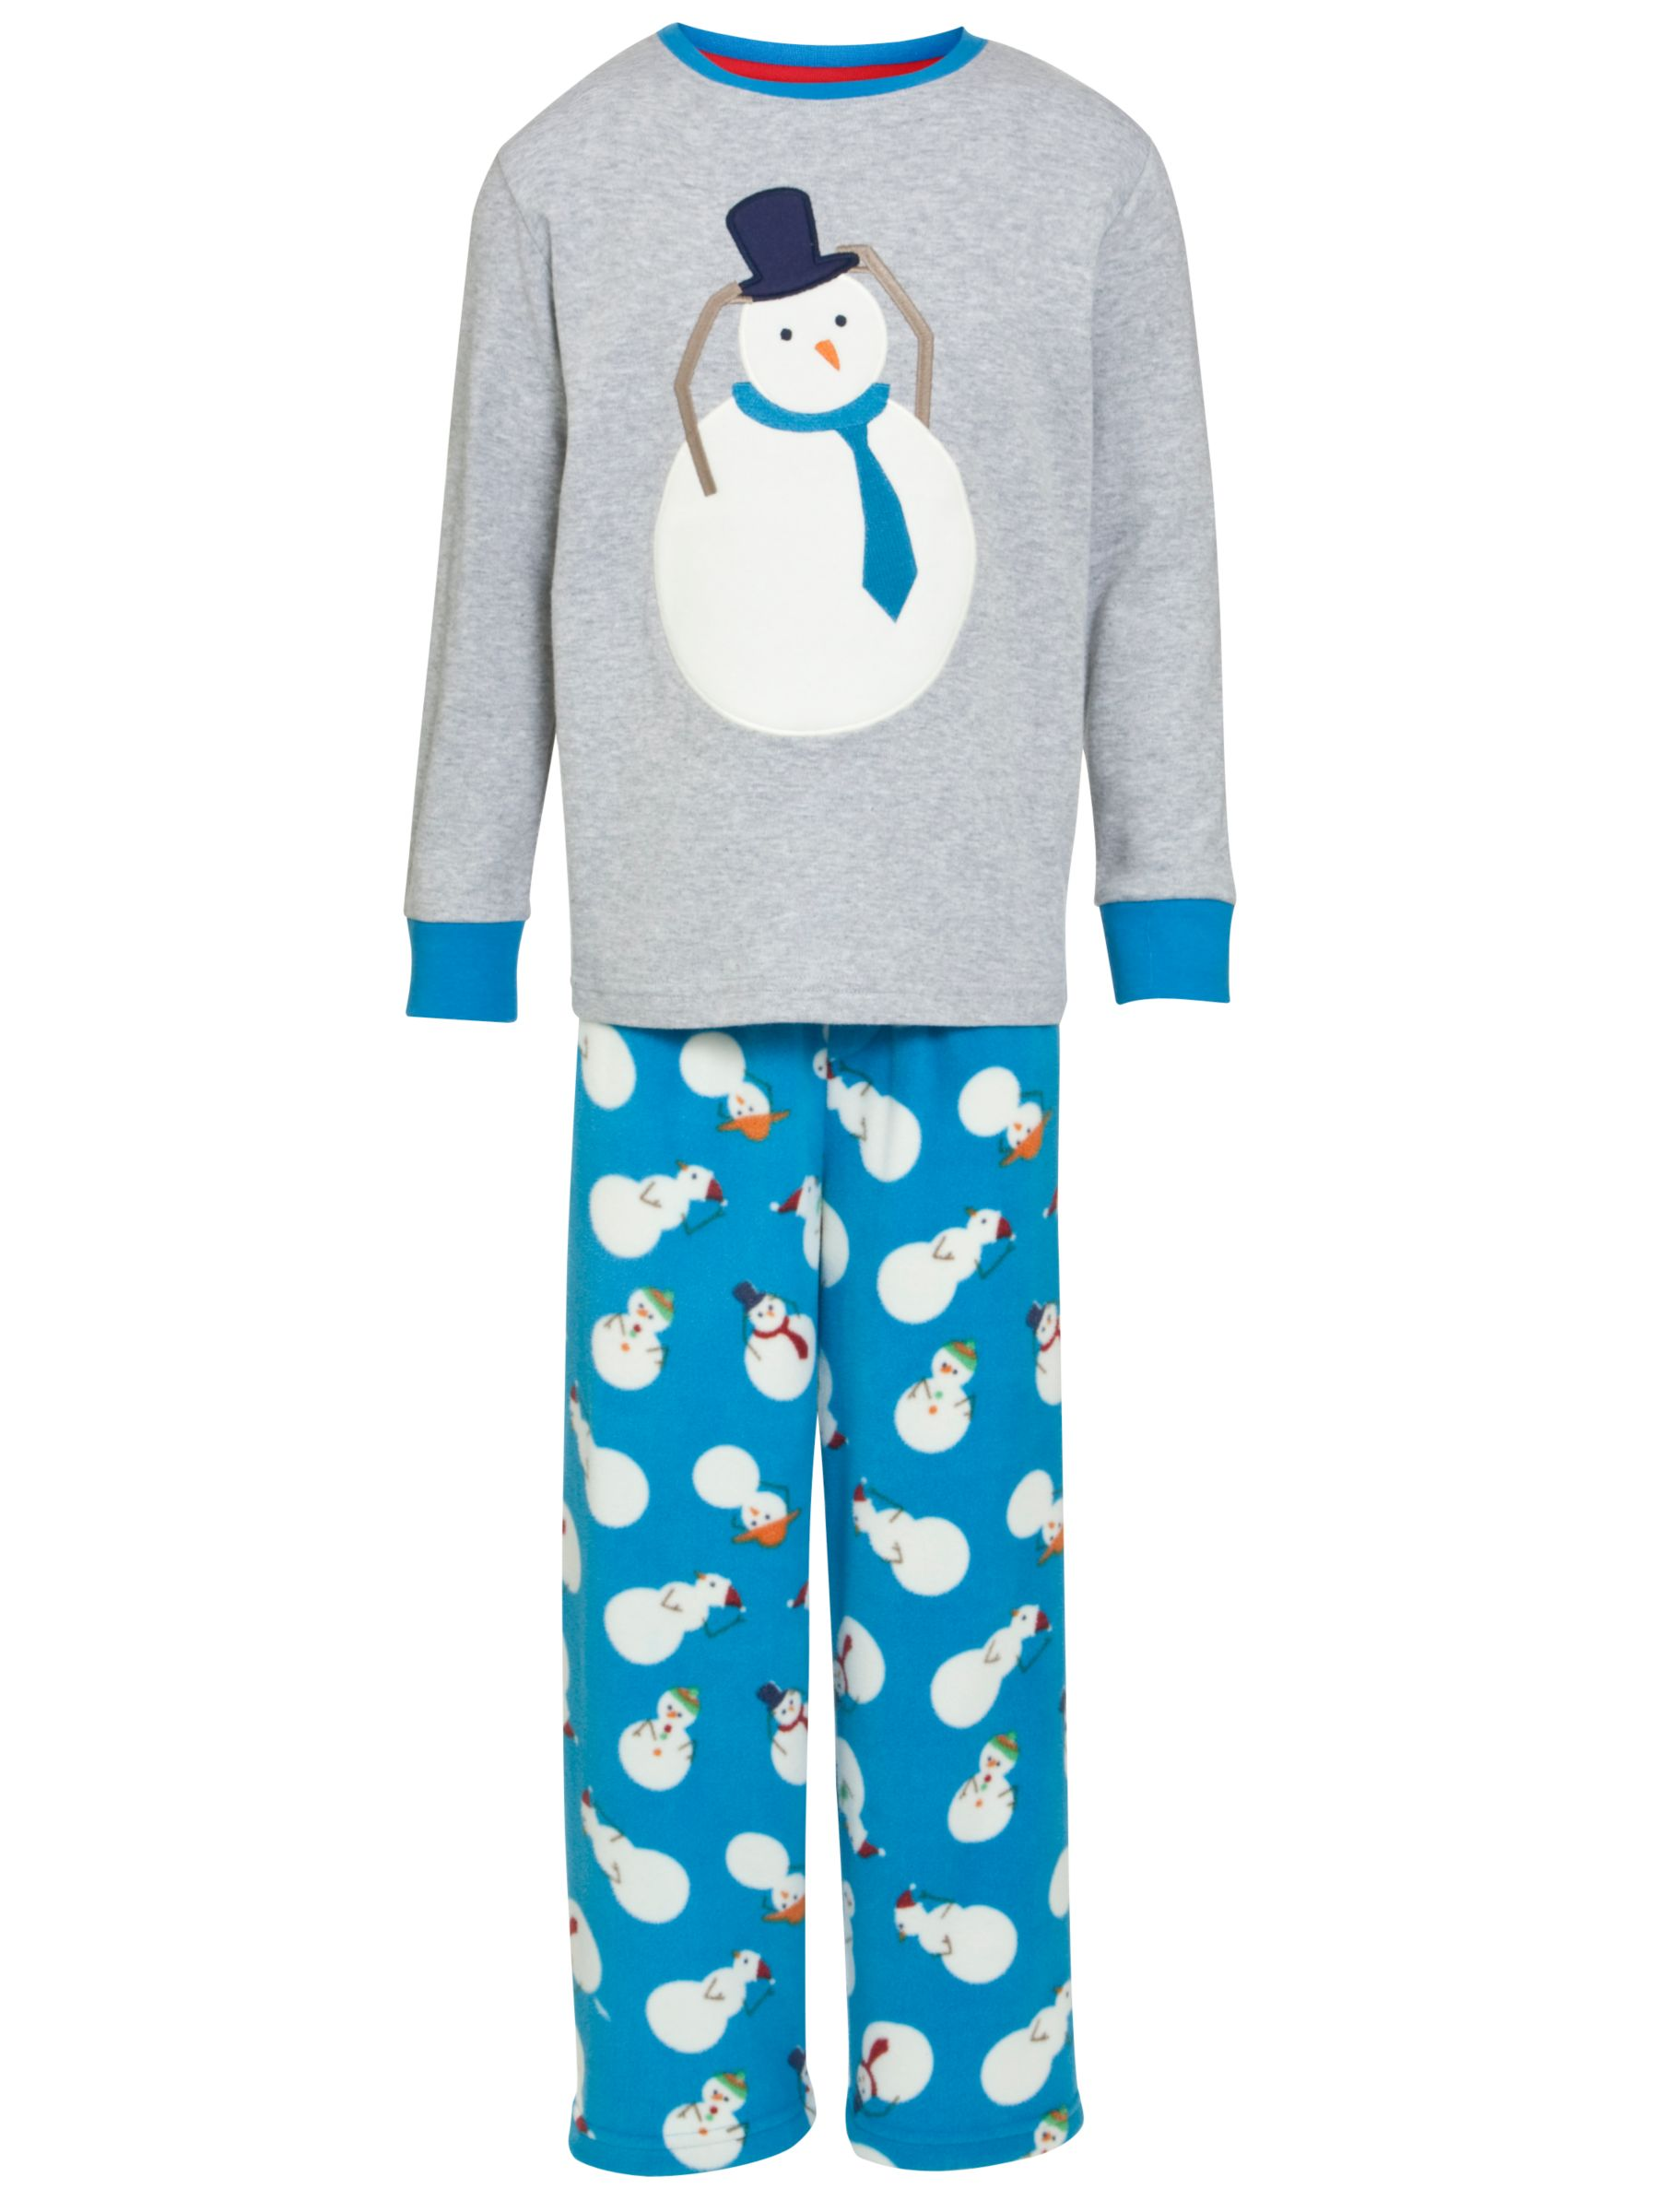 John Lewis Boy Snowman Pyjamas, Blue/Grey